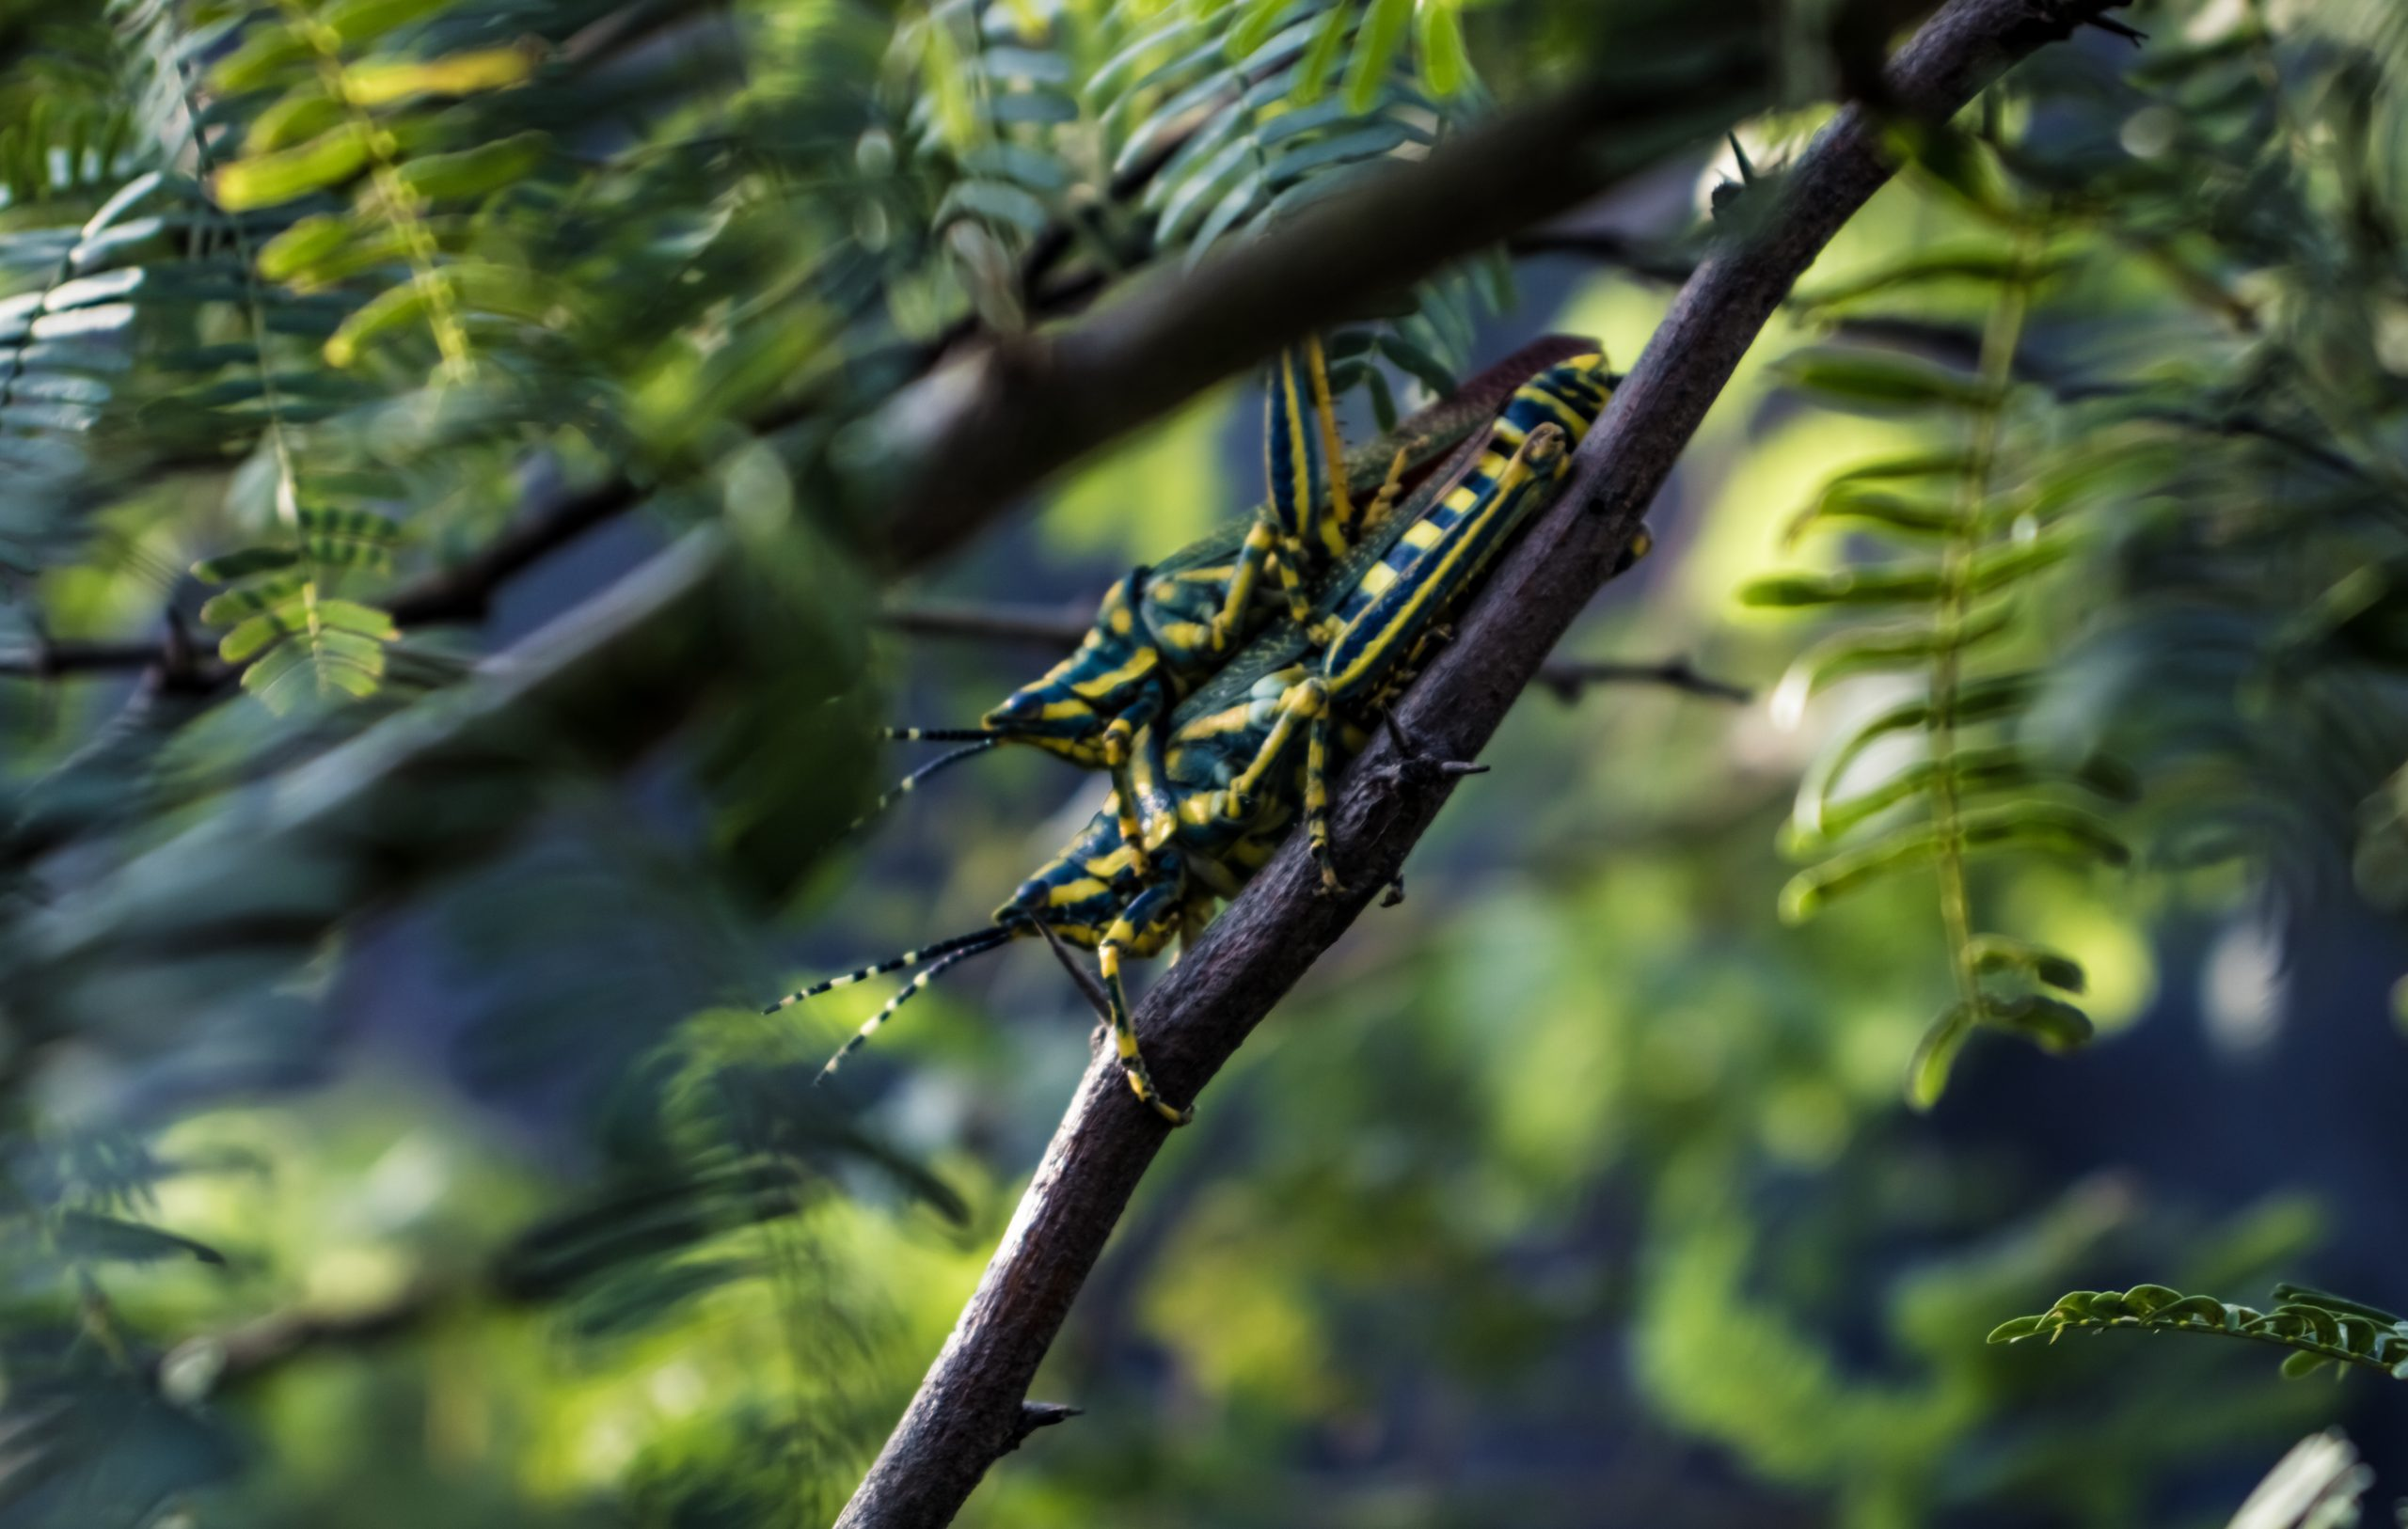 Two insects mating on a branch